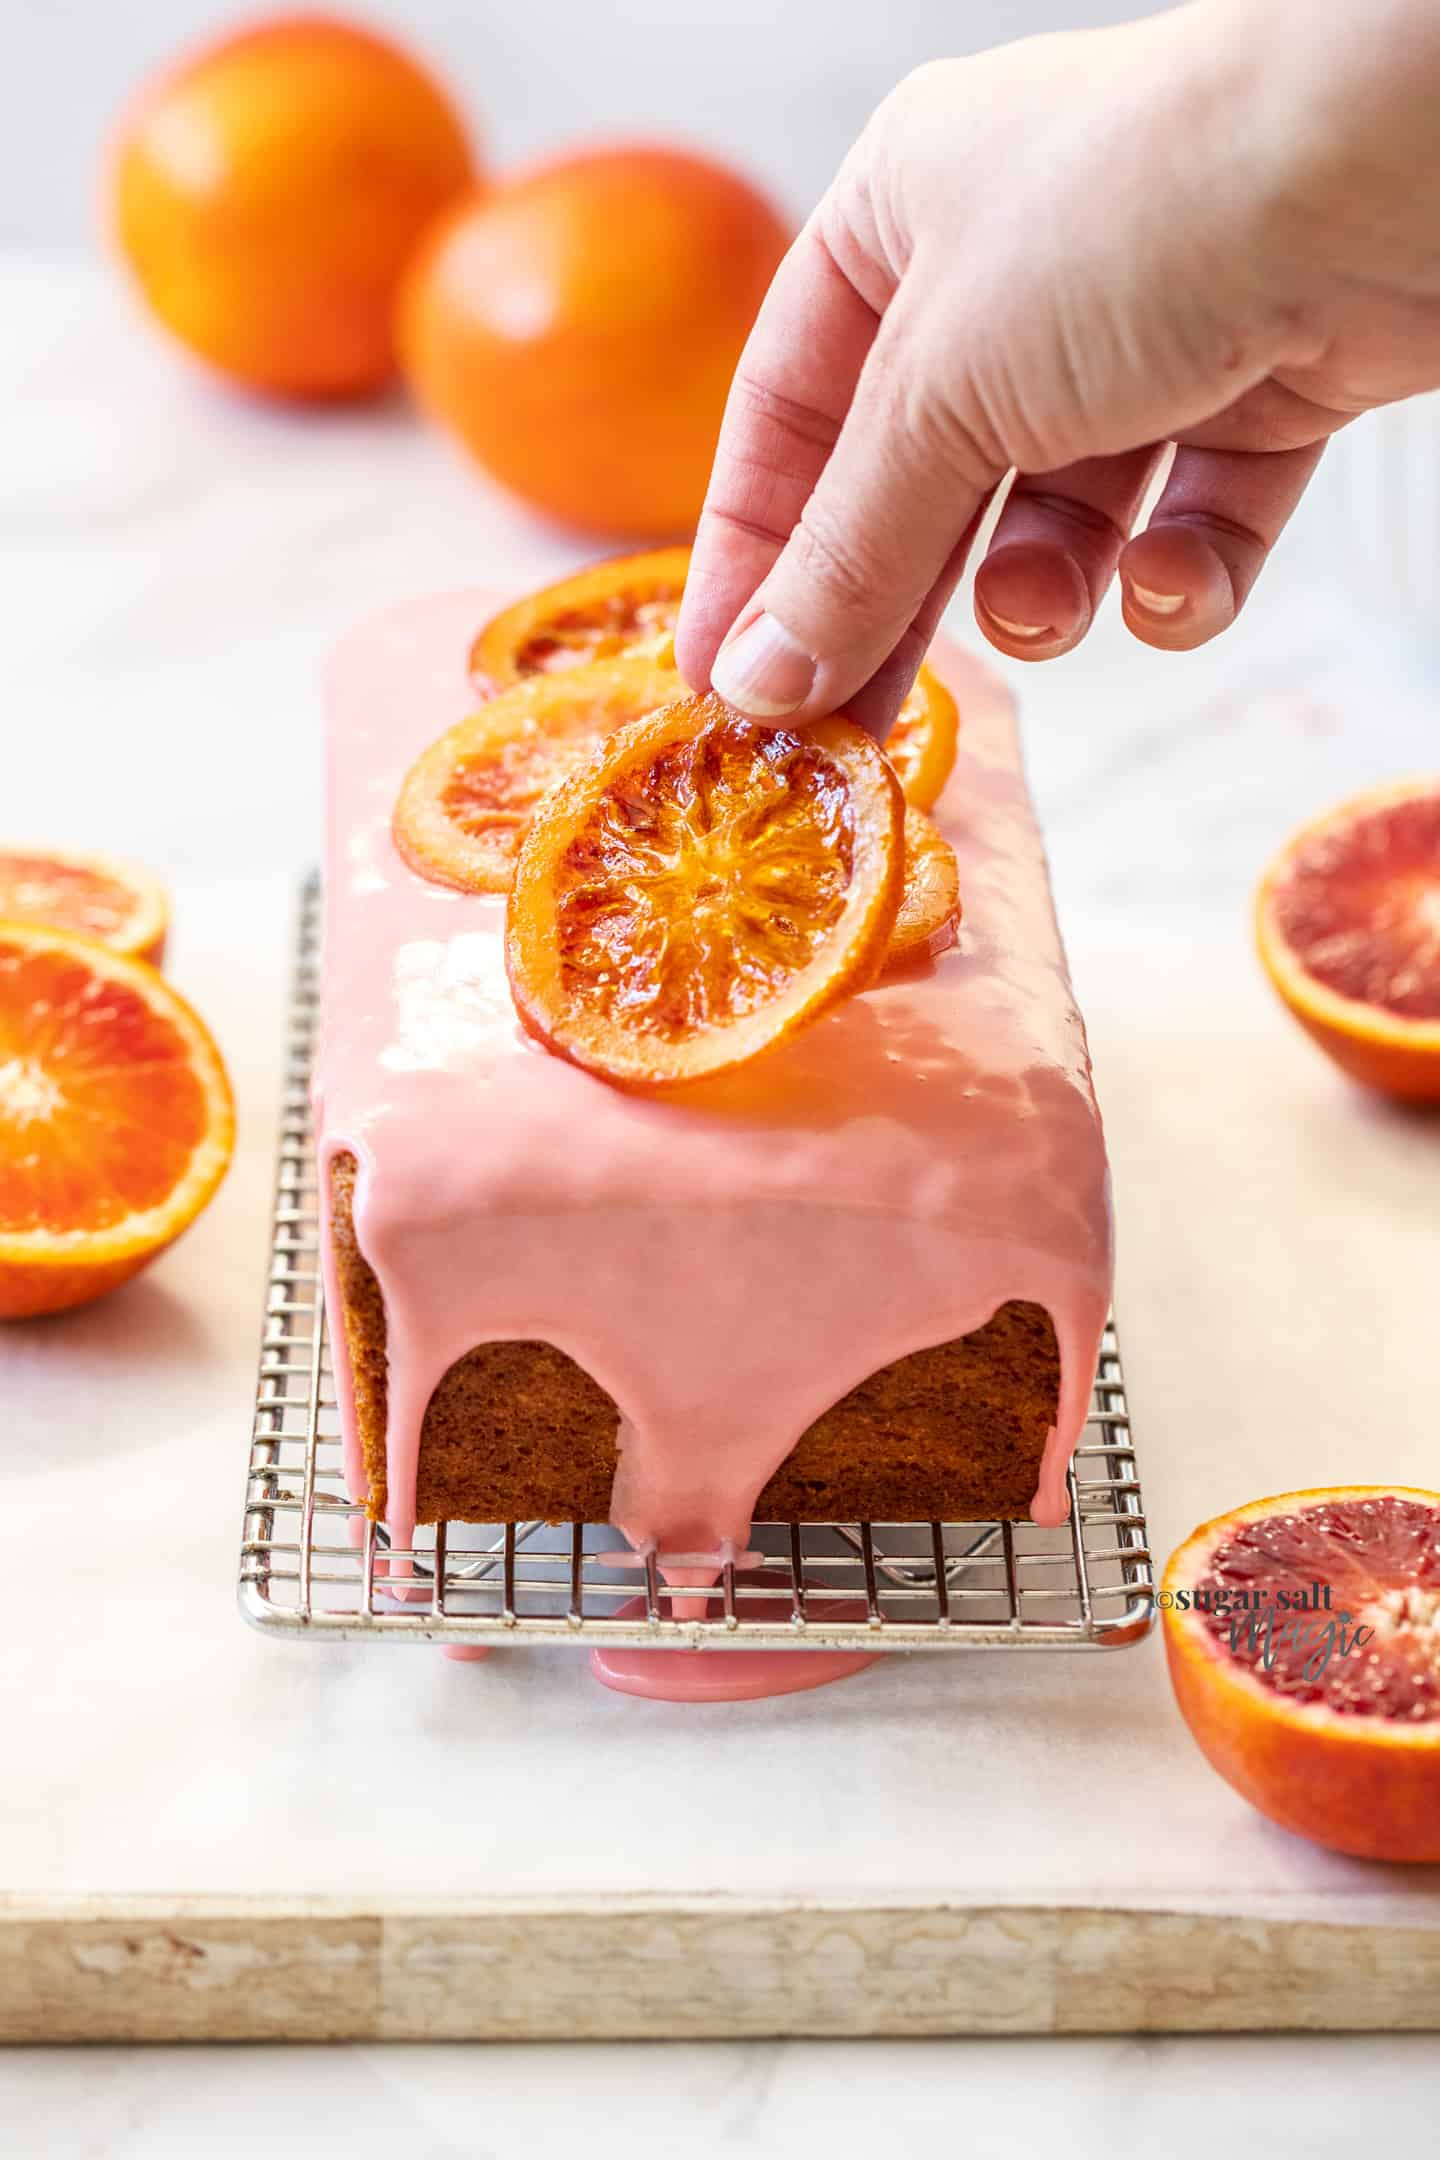 A hand placing a candied orange slice on a loaf cake